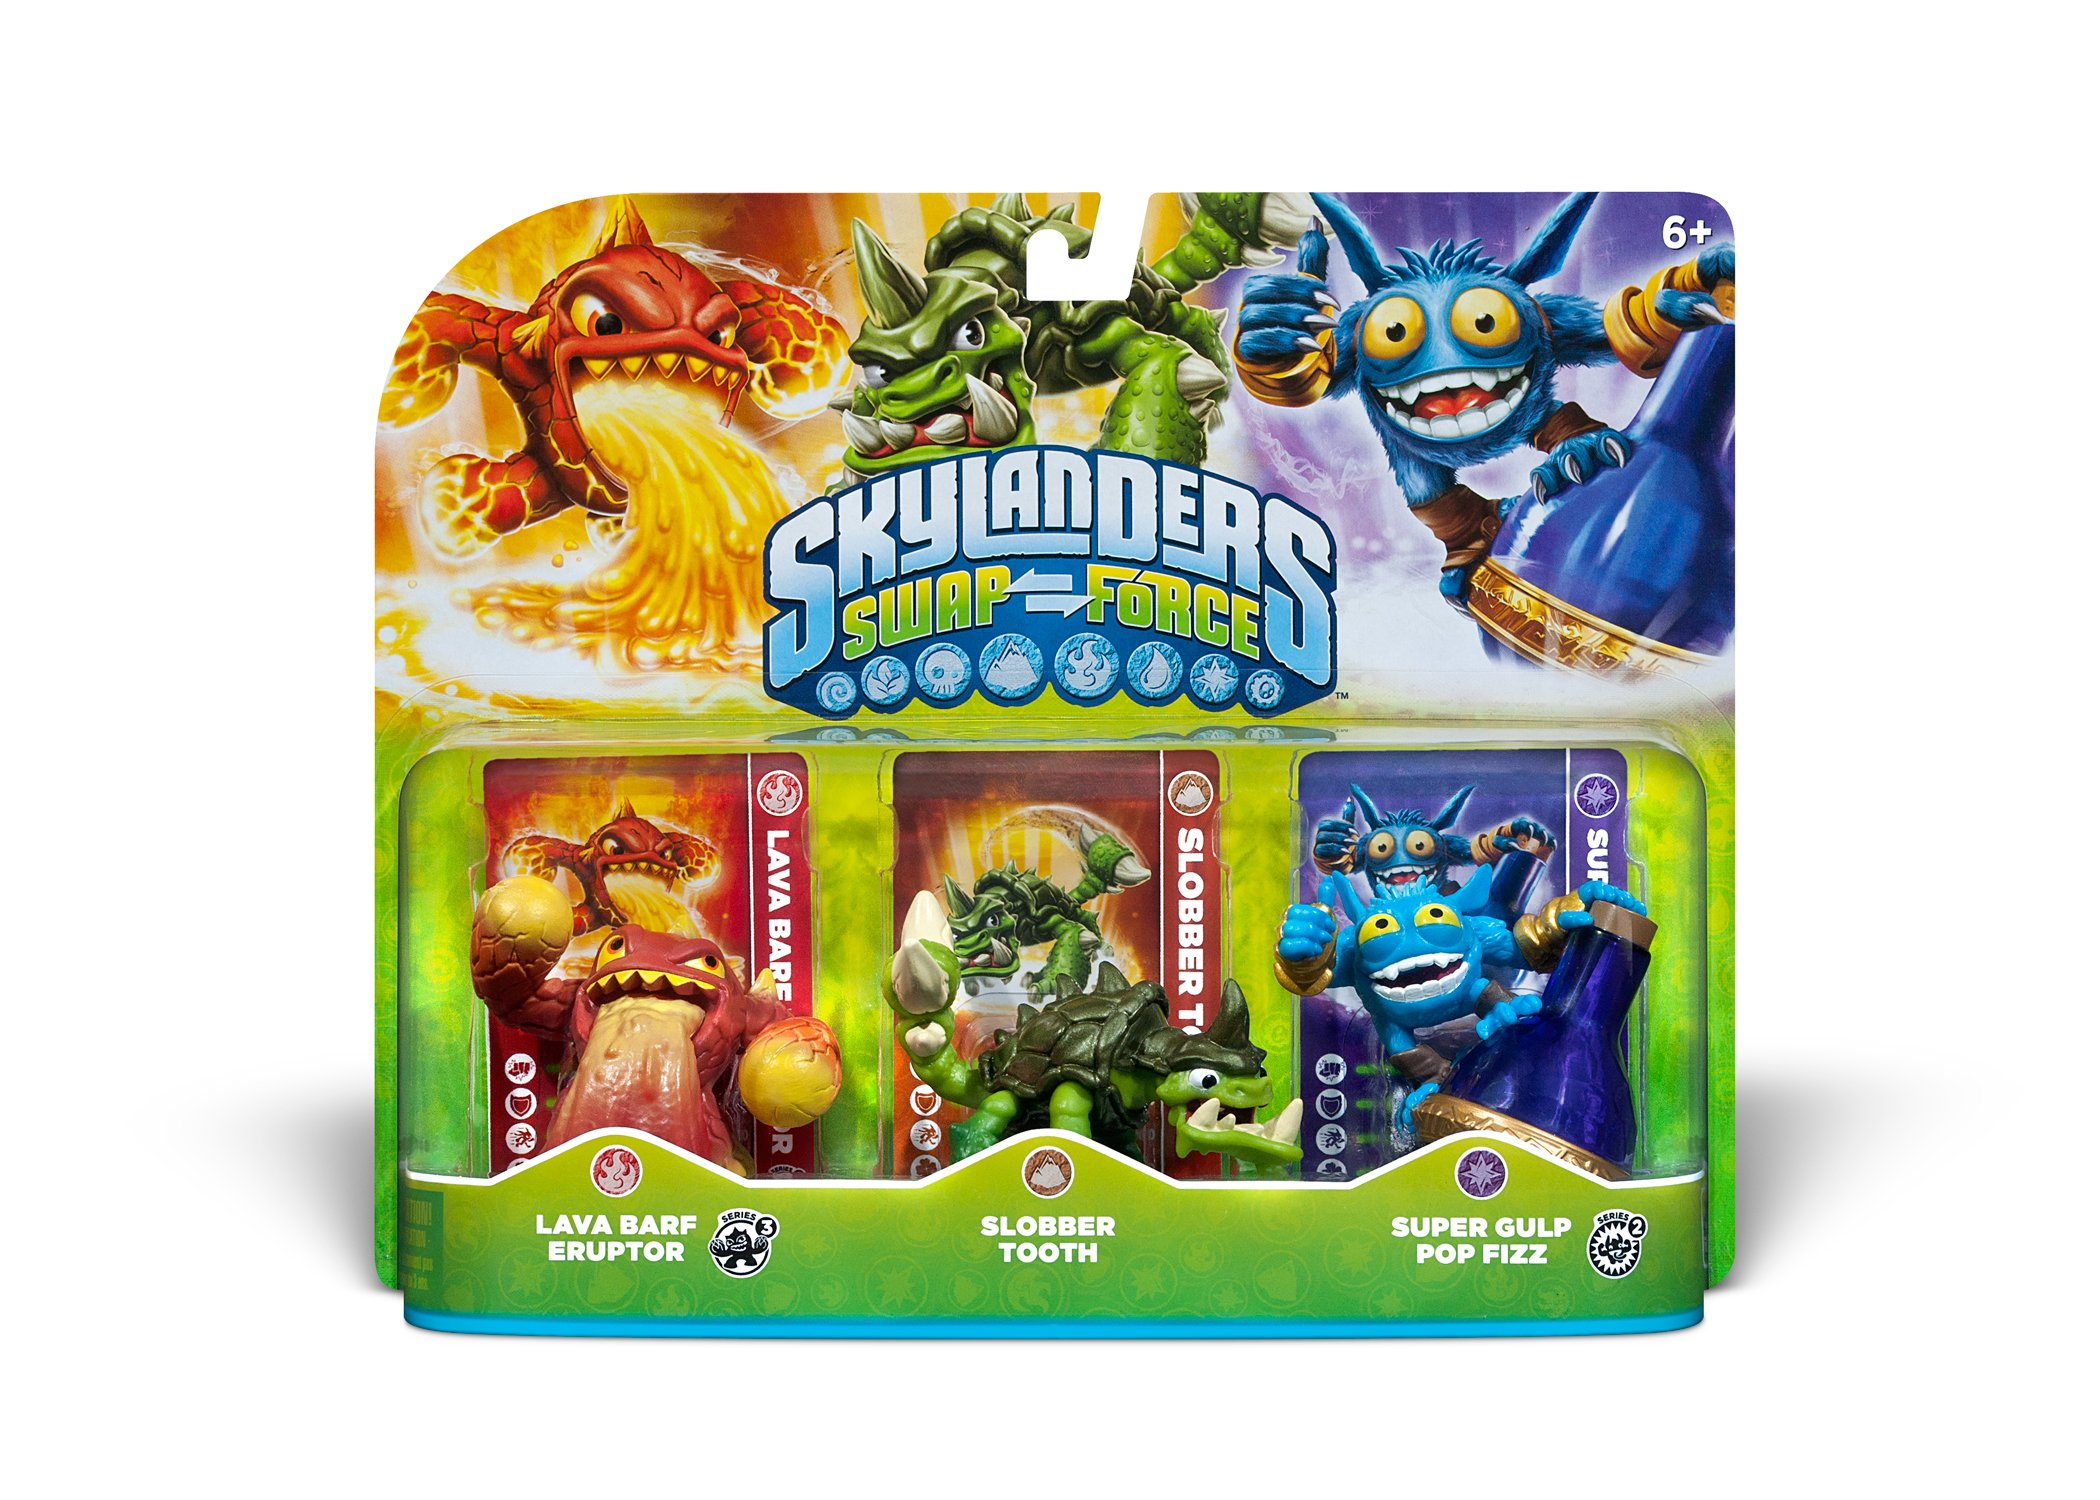 Skylanders SWAP Force Triple Character Pack: Lava Barf Eruptor, Slobber Tooth, Super Gulp Pop Fizz